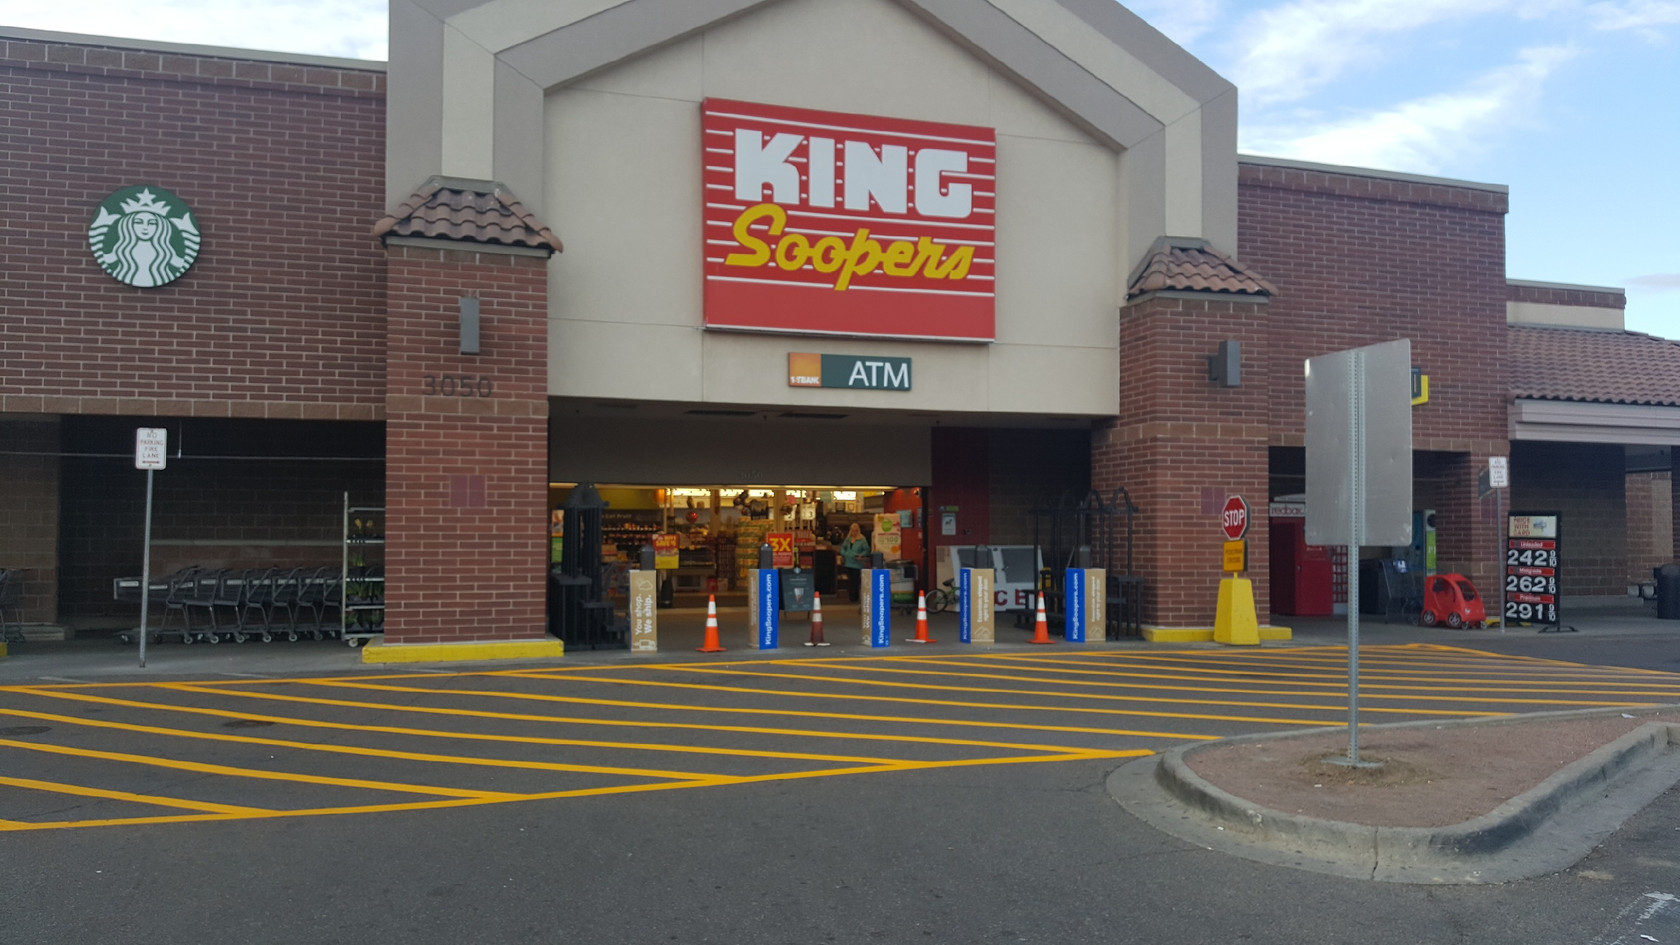 King Soopers Striping.jpeg